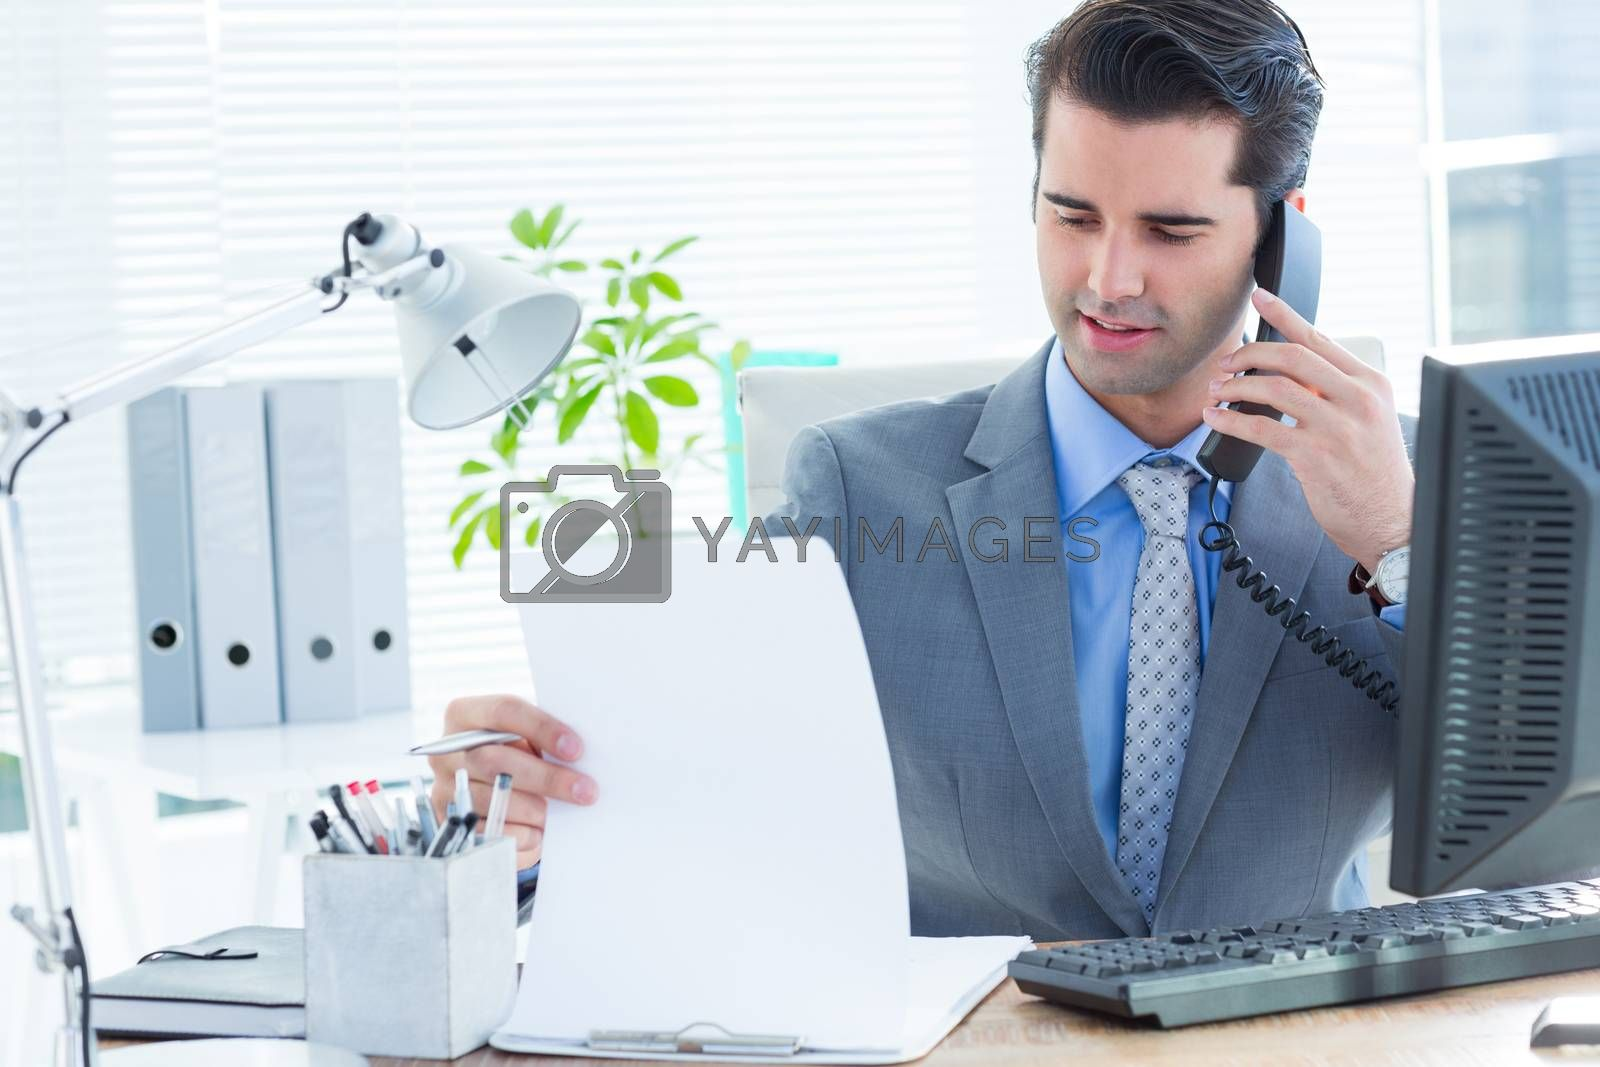 Royalty free image of Professional businessman checking at his notebook by Wavebreakmedia